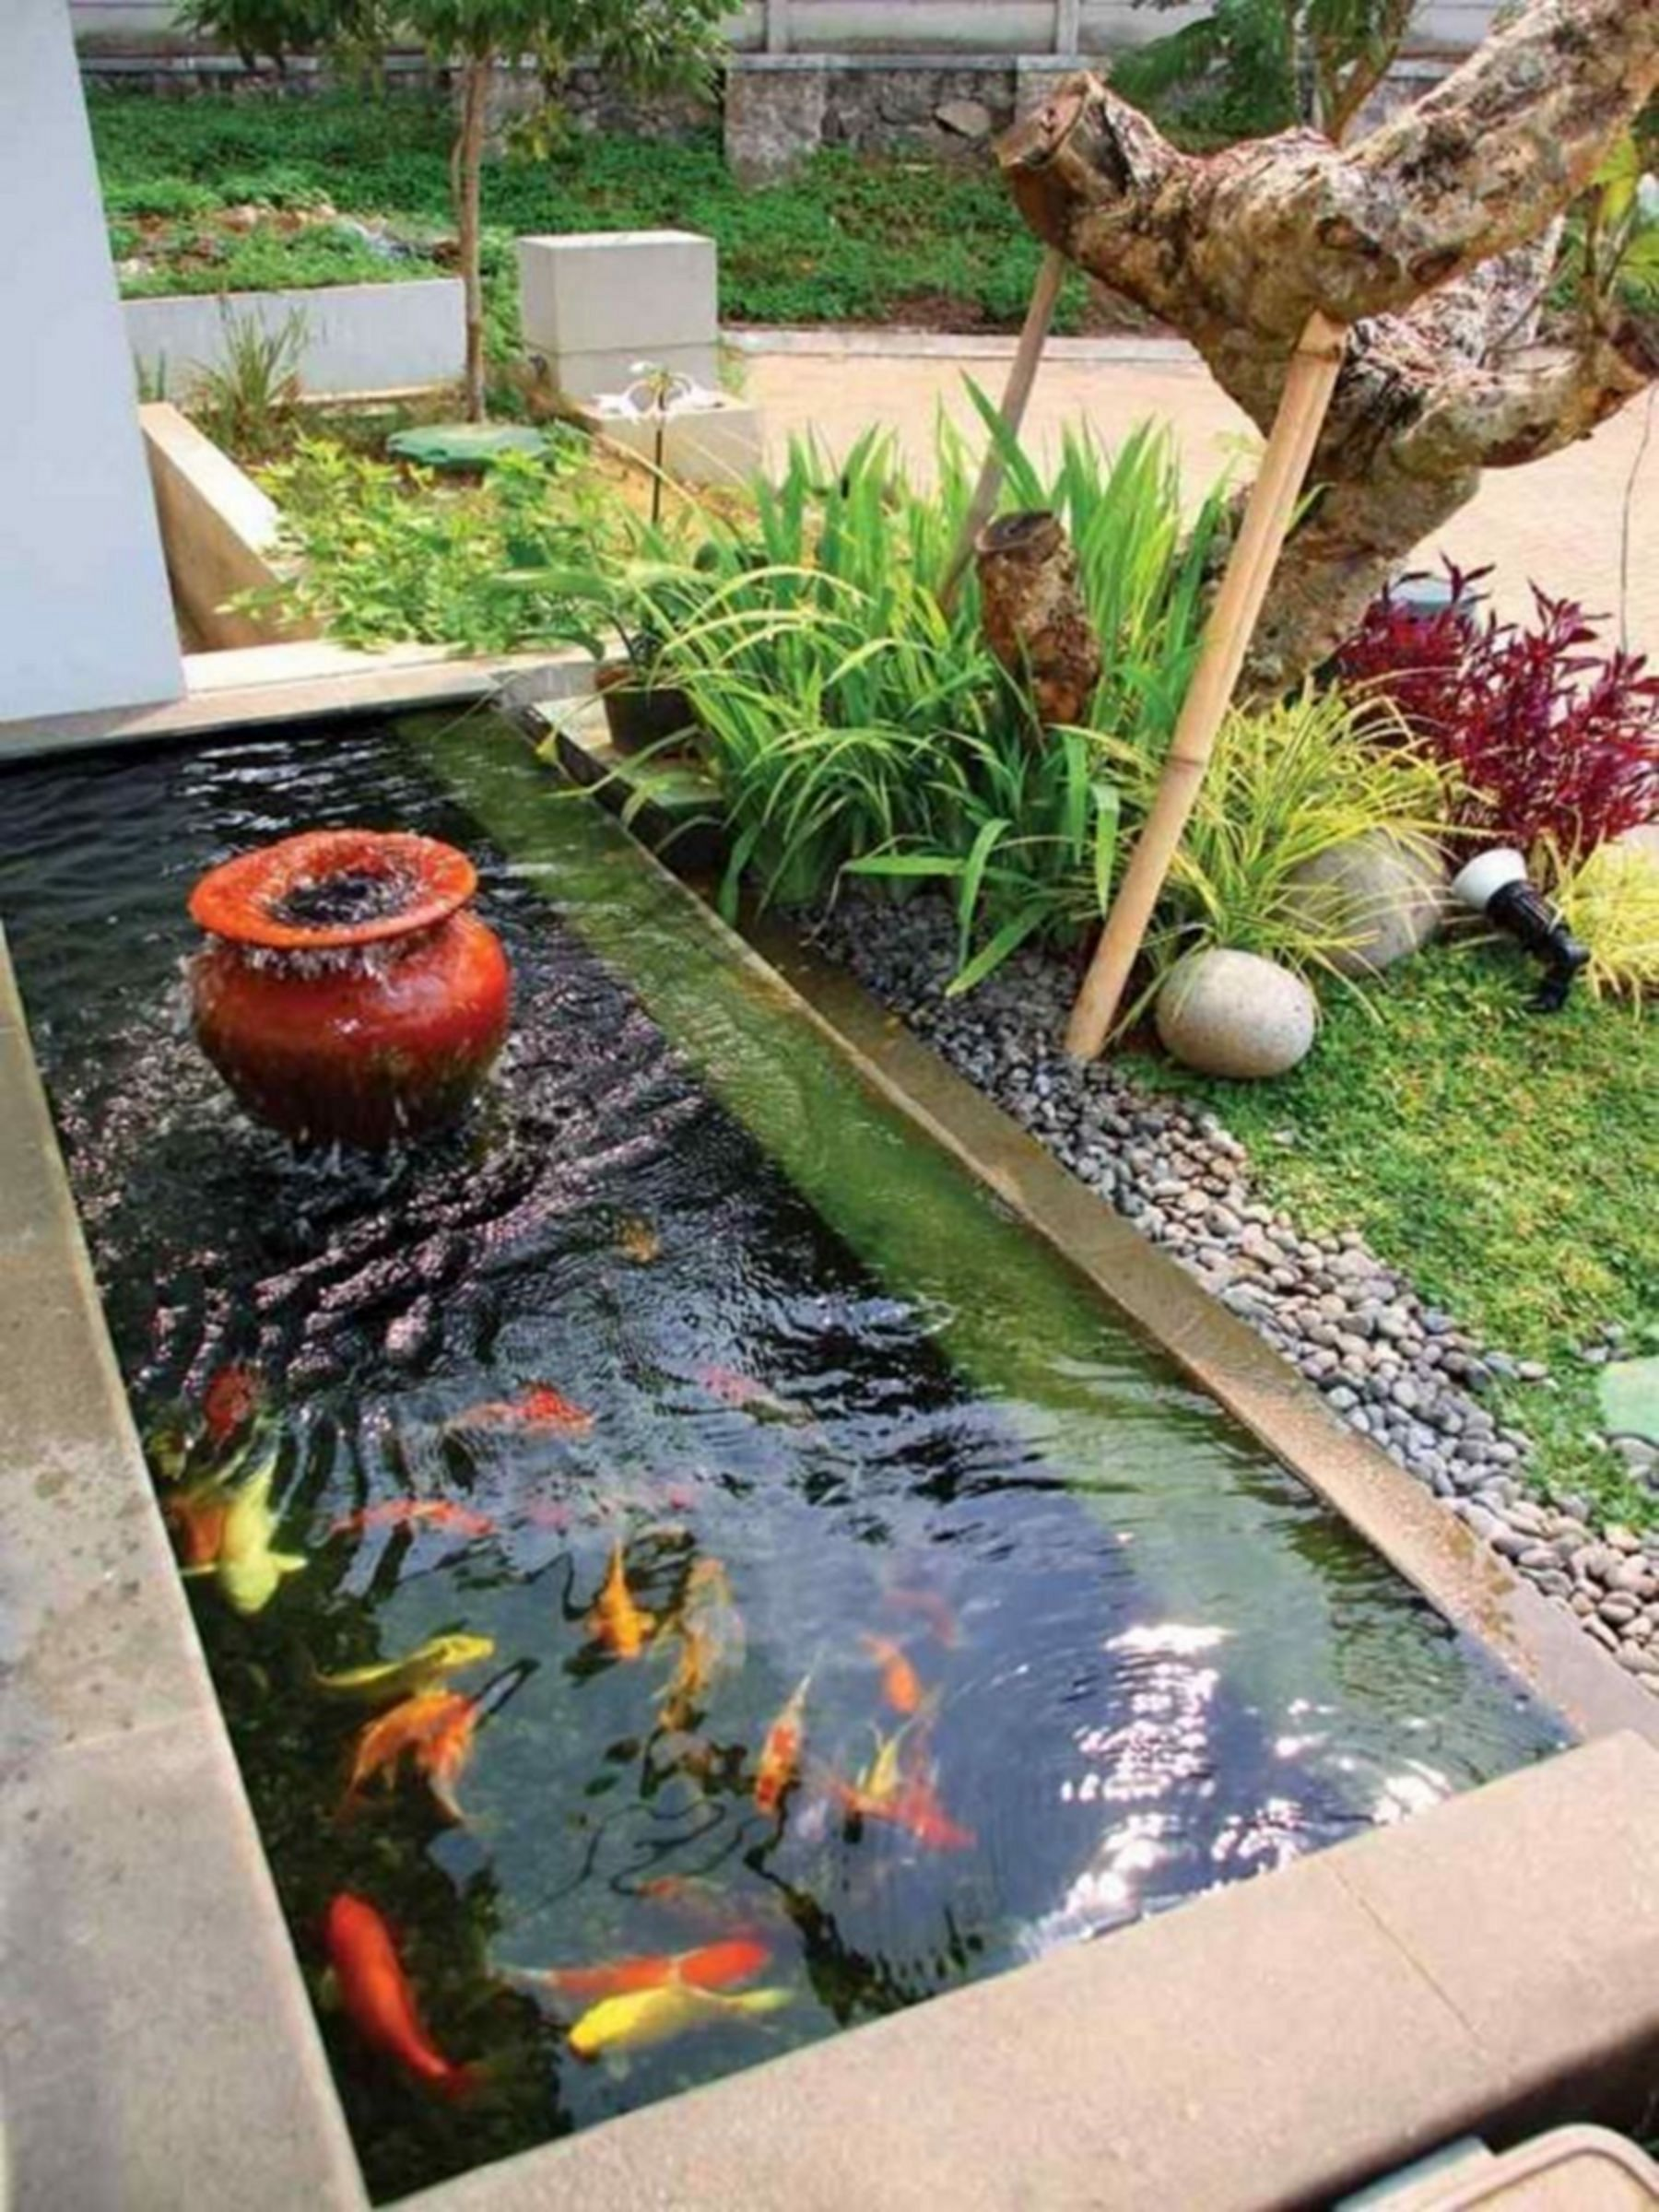 8 Minimalist Fish Pond Design To Beautify Your Home Fish Ponds Backyard Fish Pond Gardens Backyard Landscaping Designs